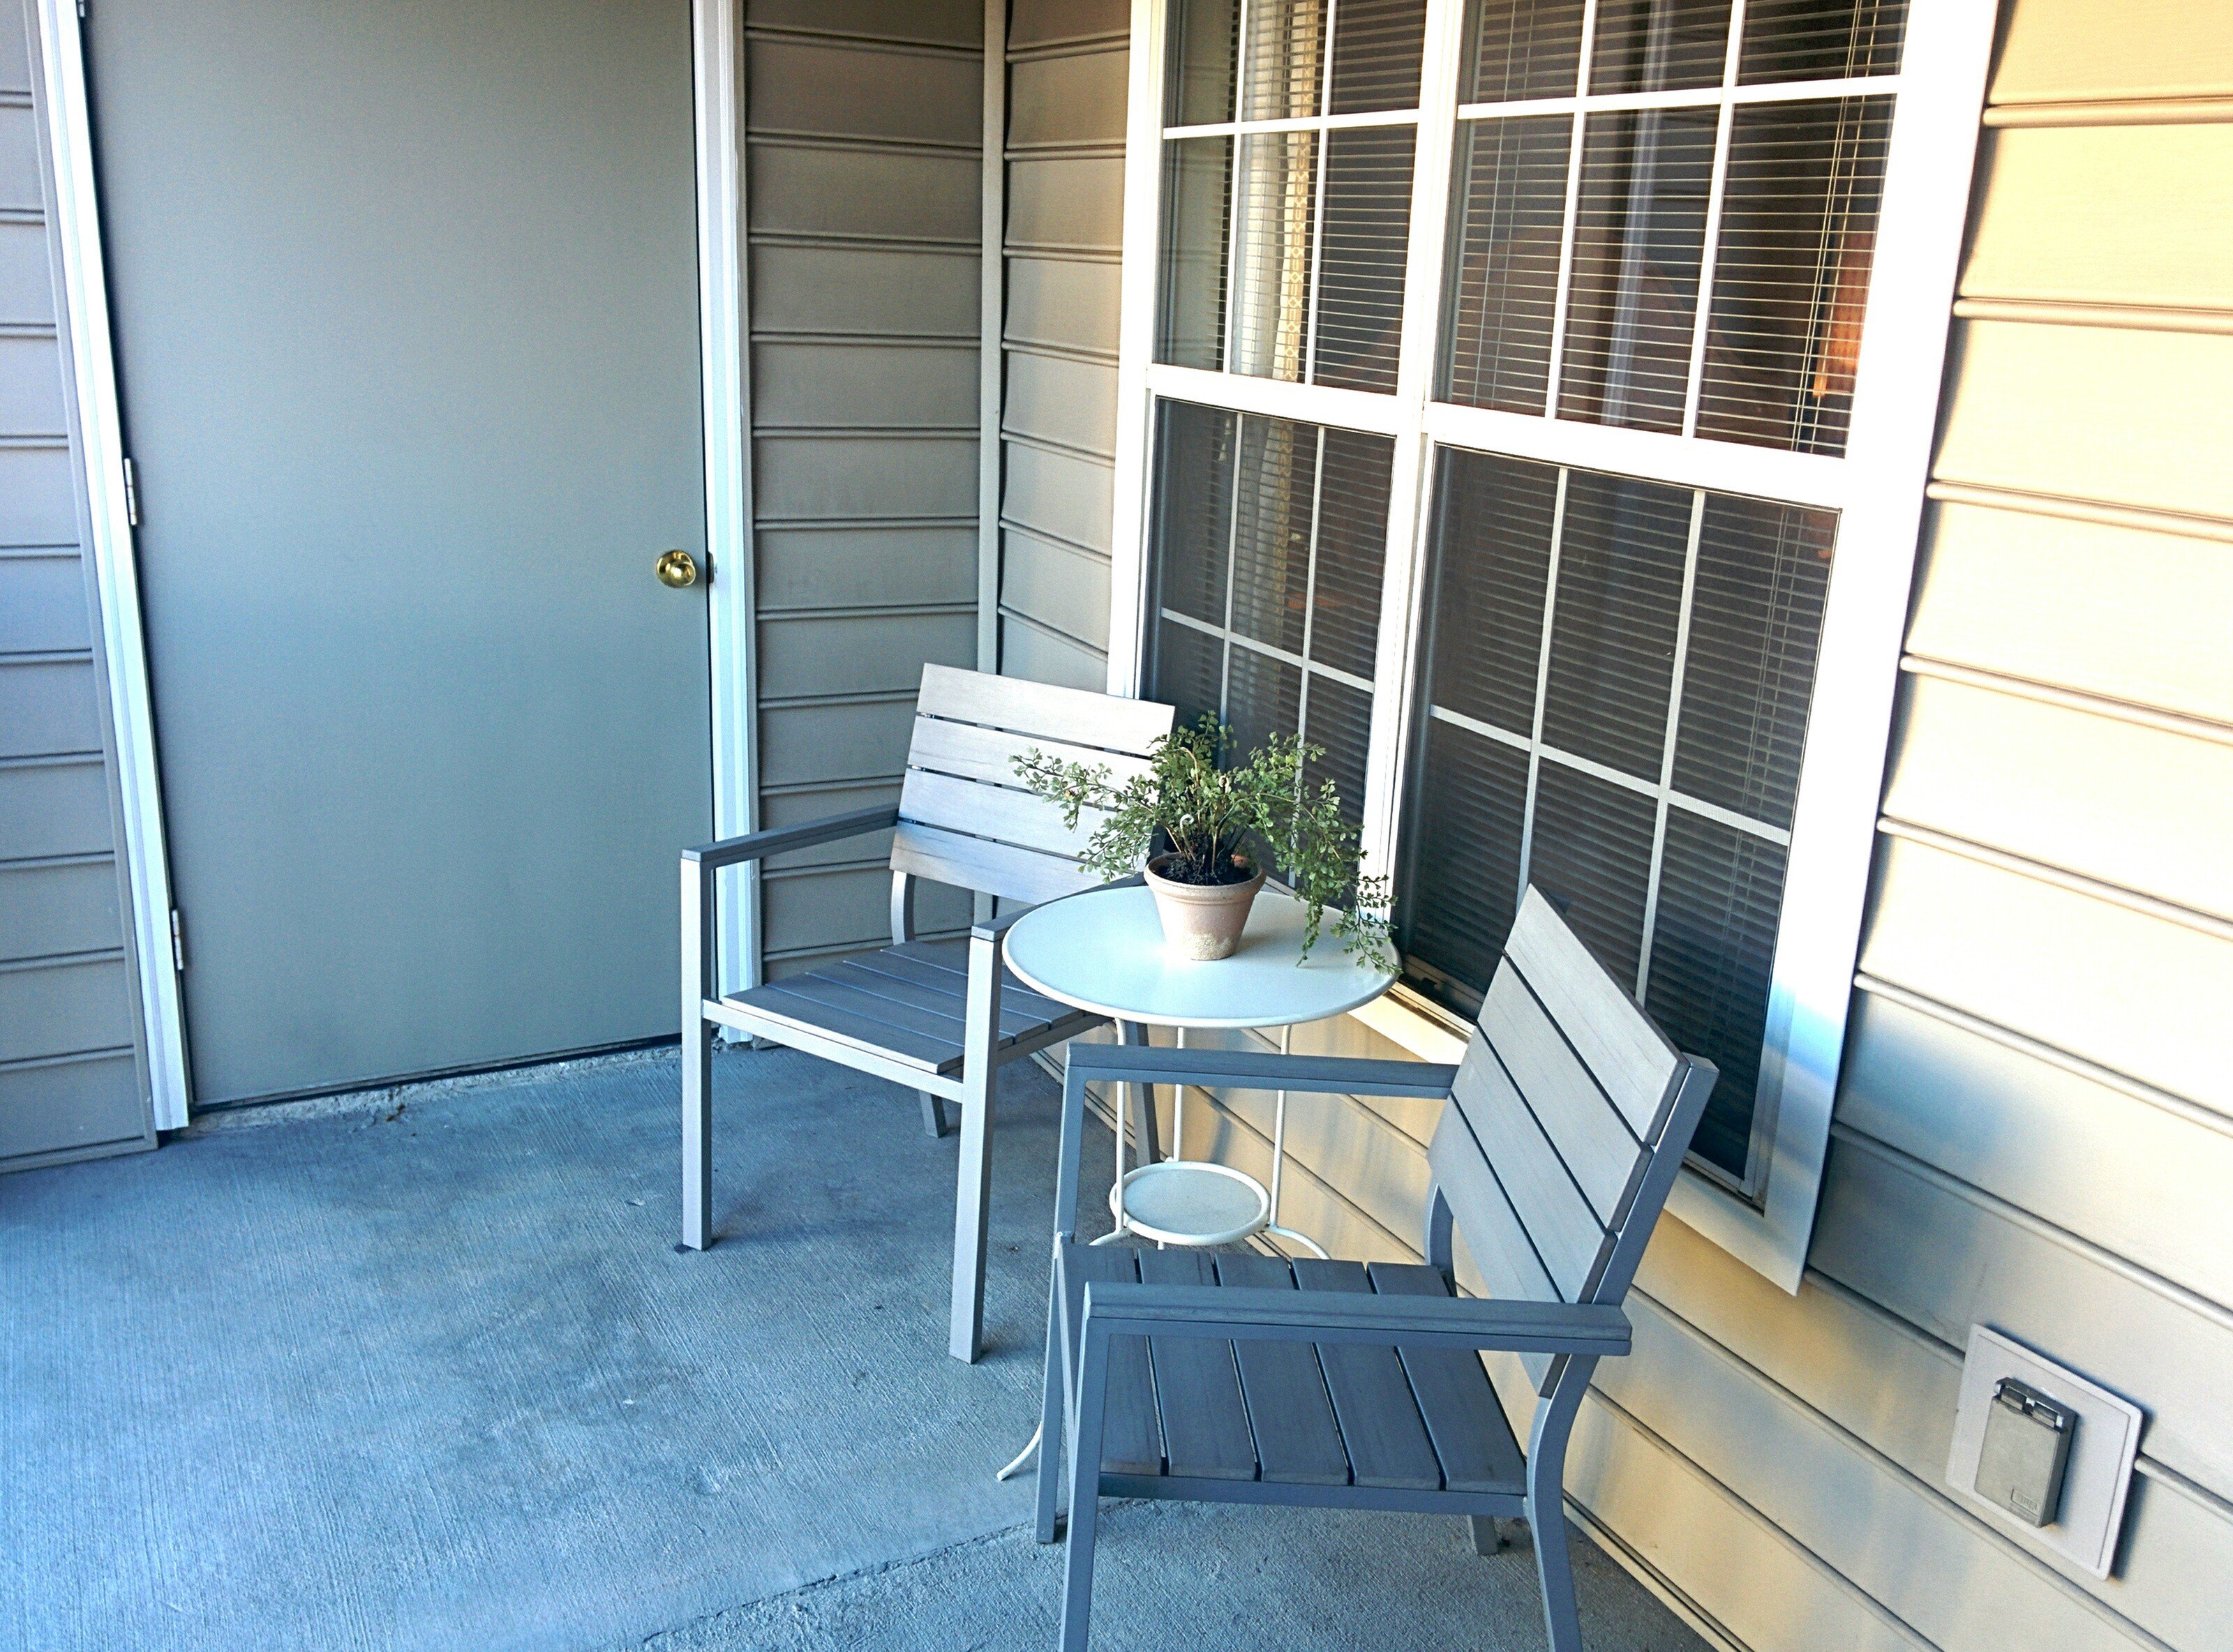 Image of Balcony for Parc at Perimeter